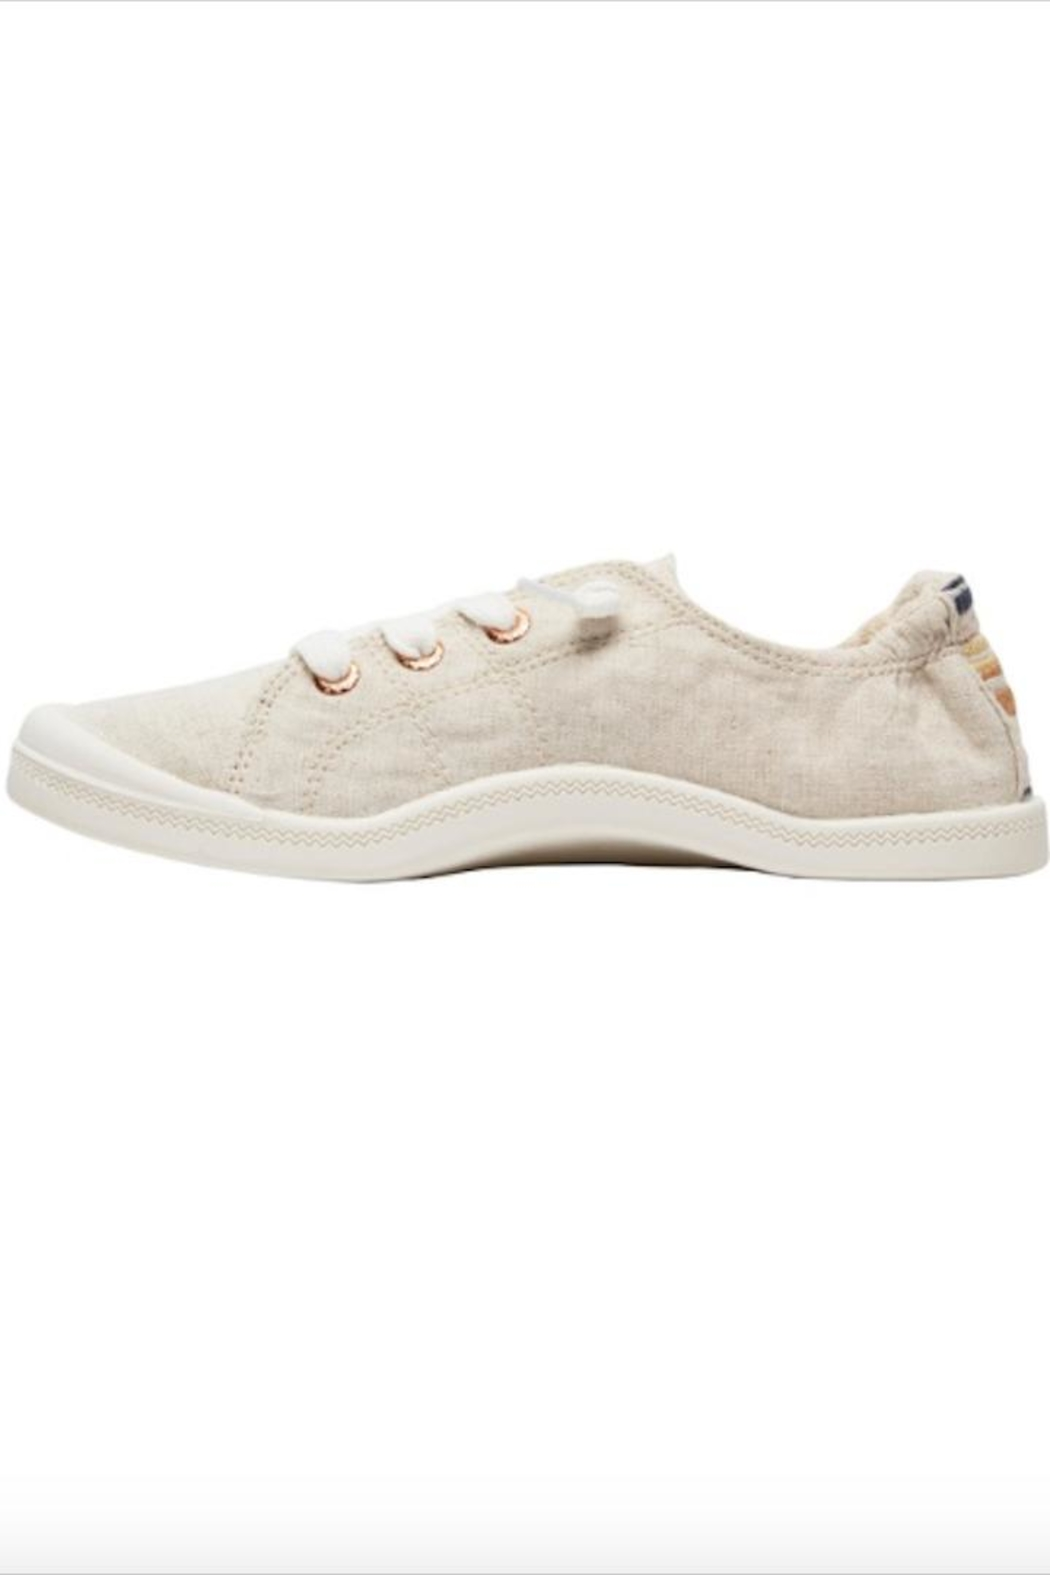 Roxy Slip-On Canvas Shoes - Side Cropped Image